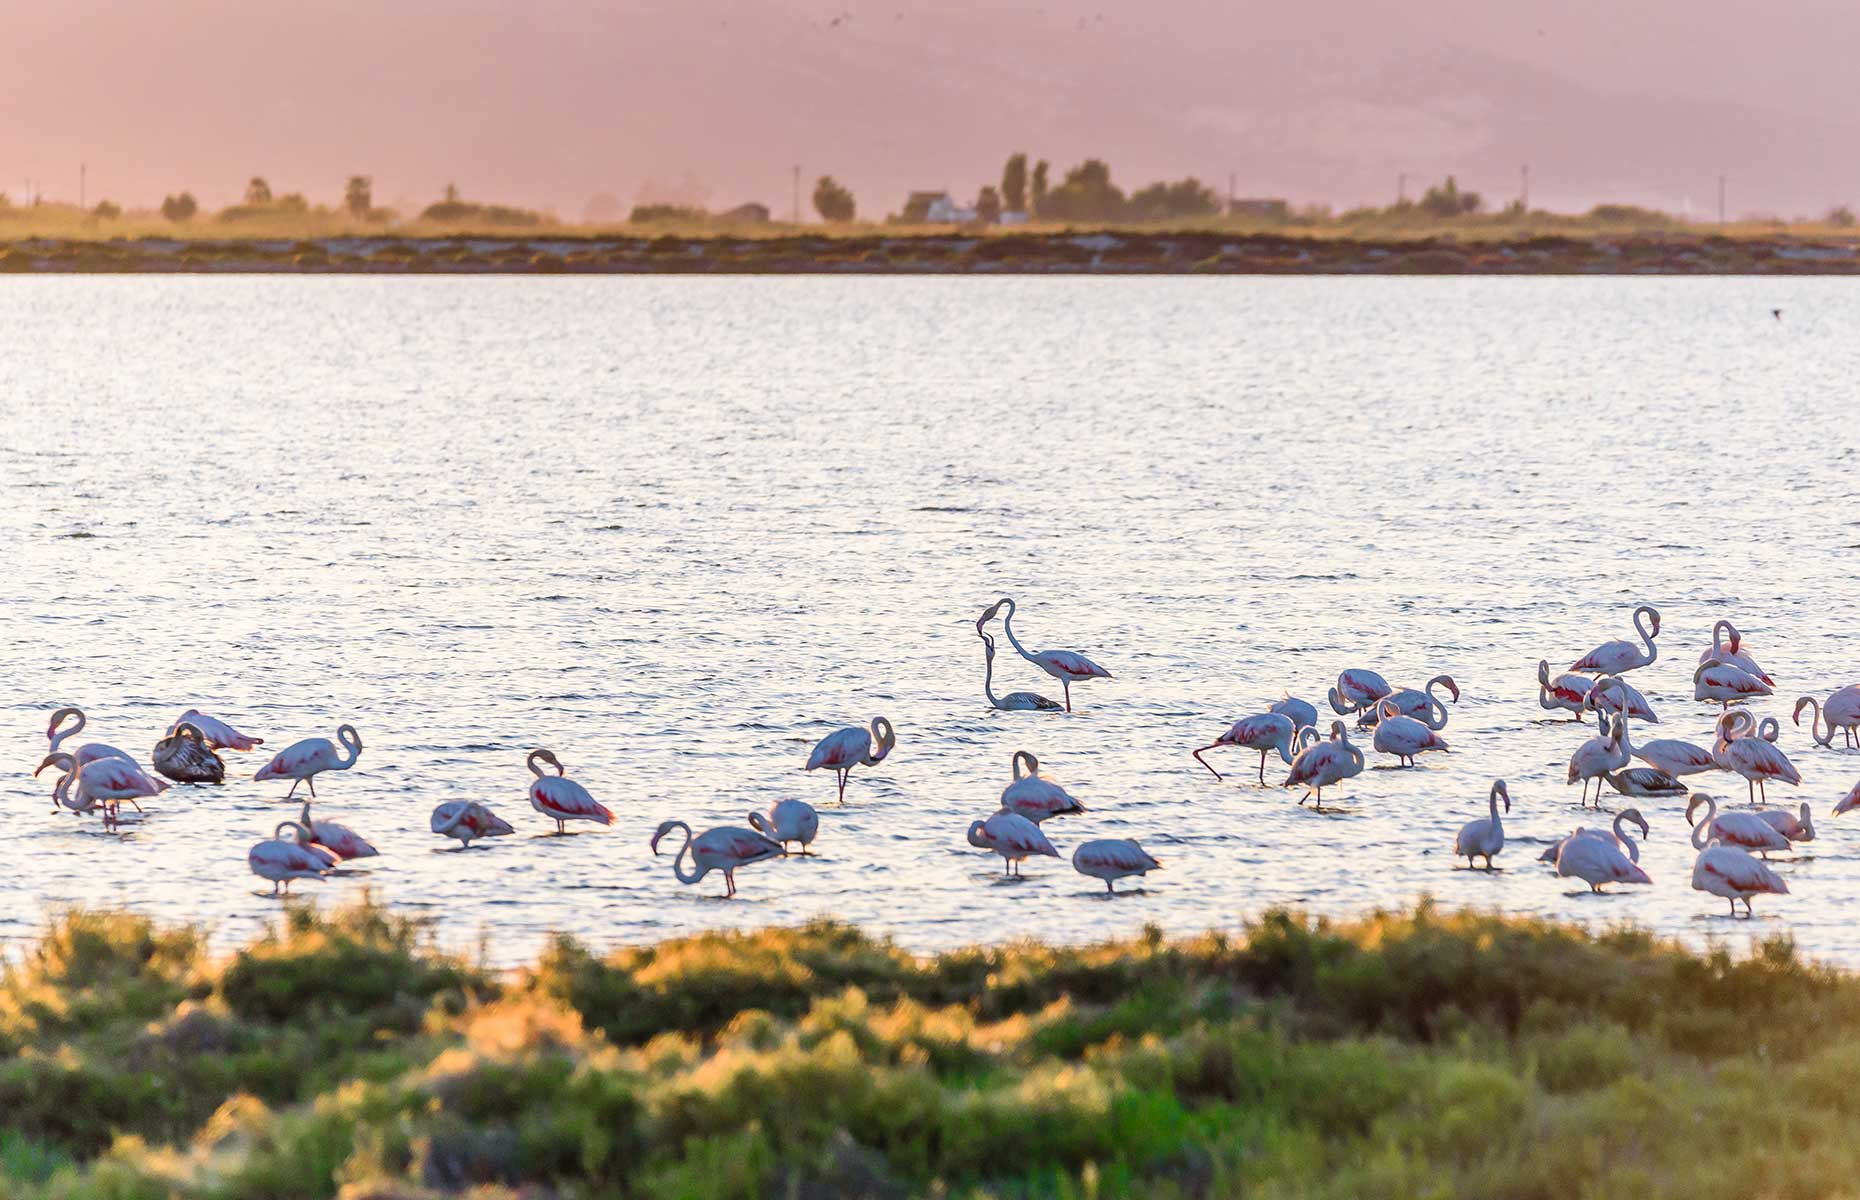 Flamingoes in the Delta del Ebro (Image: gg-foto/Shutterstock)